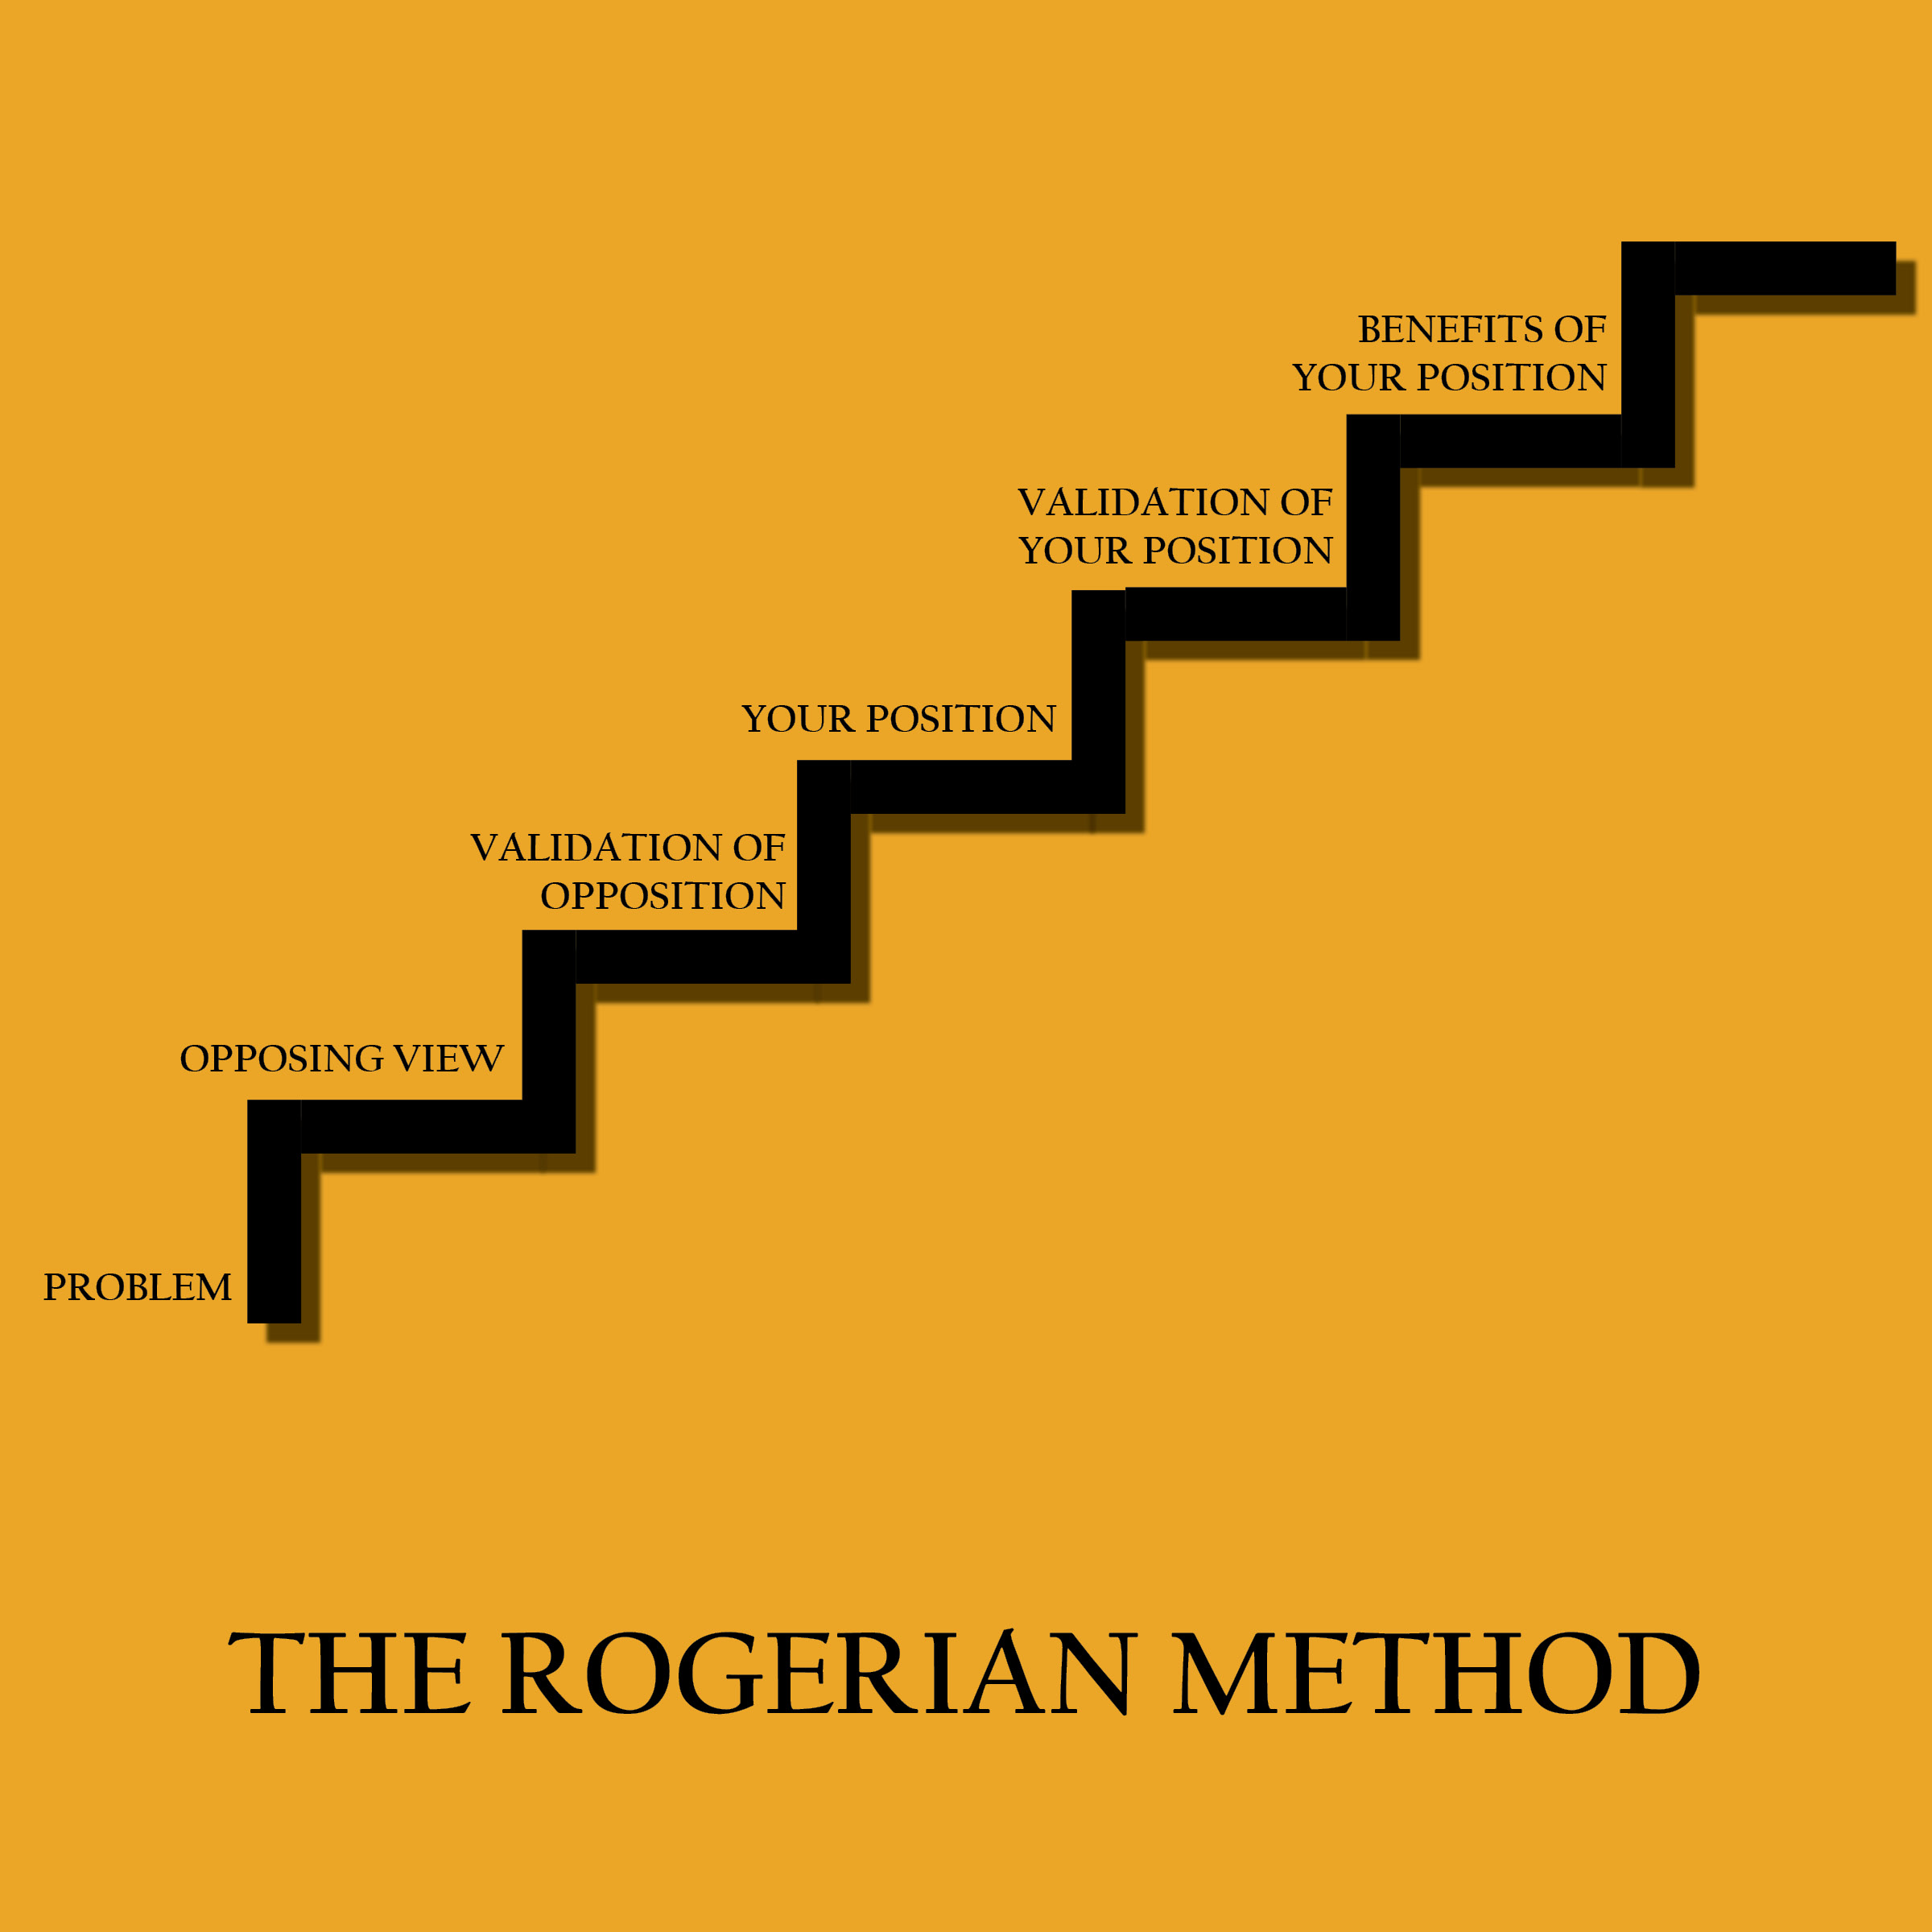 how to organize a paper the rogerian method the visual  how to organize a paper the rogerian method